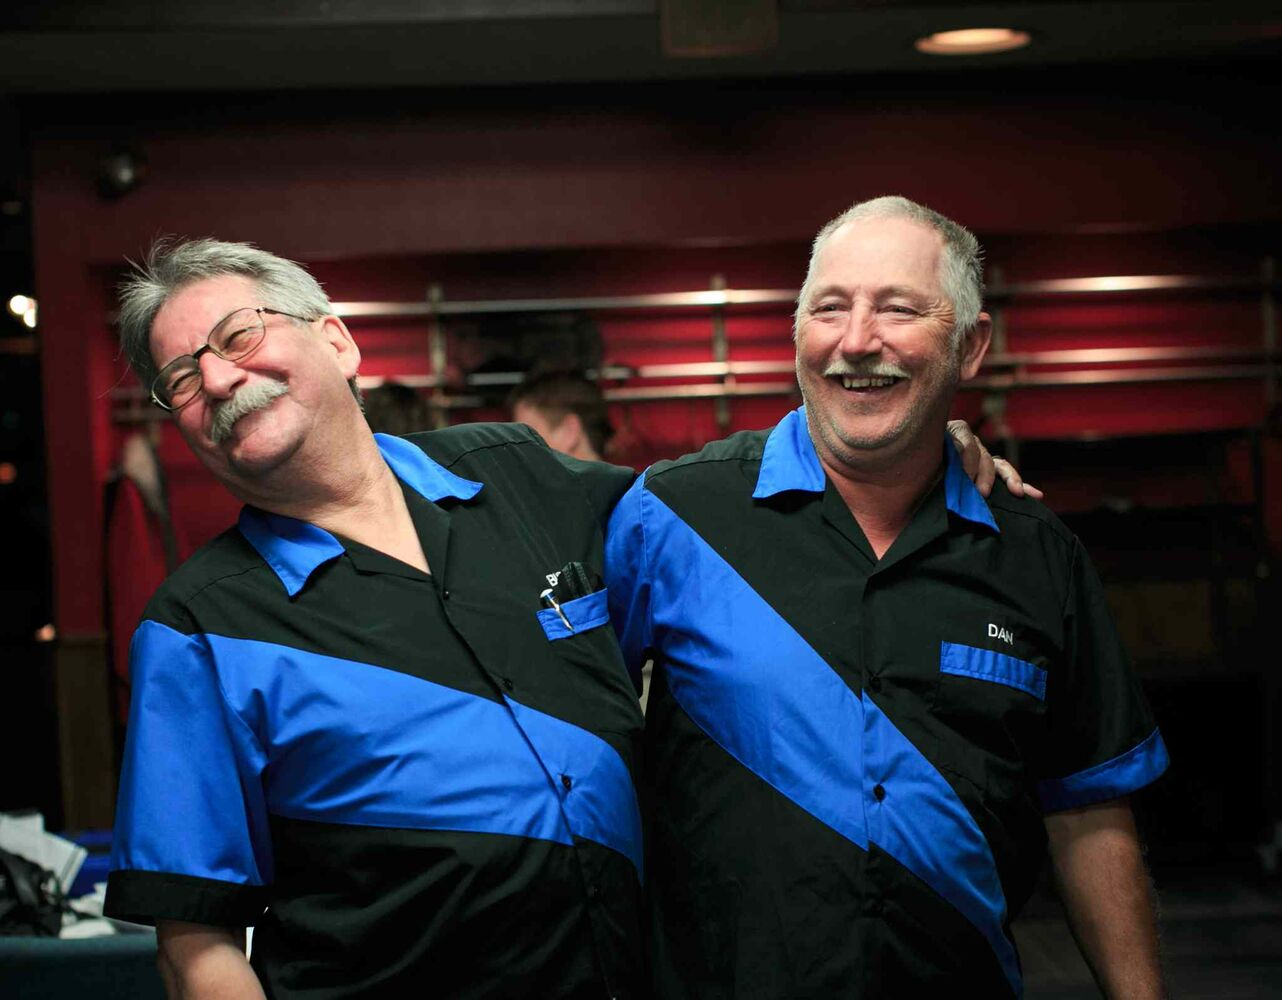 Darts teammates Bud Hawkins and Dan Cady laugh during a game at the St. James Legion off Portage Ave. (Melissa Tait / Winnipeg Free Press)